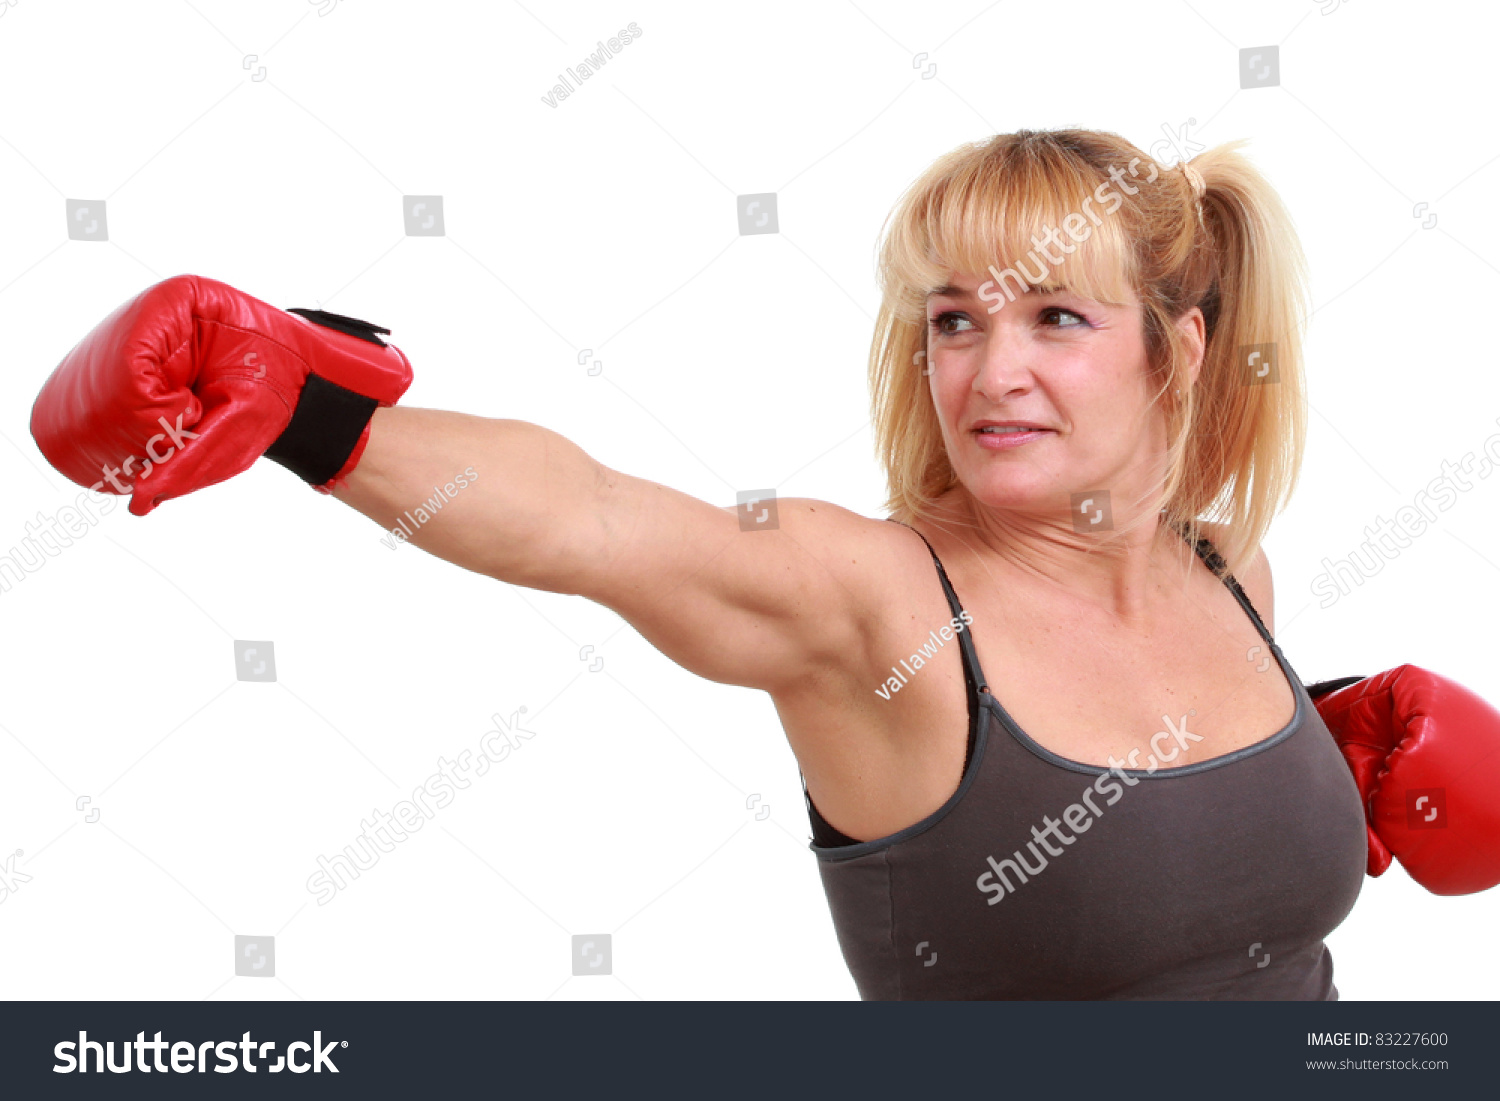 Woman Throwing A Punch Stock Photo 83227600 : Shutterstock